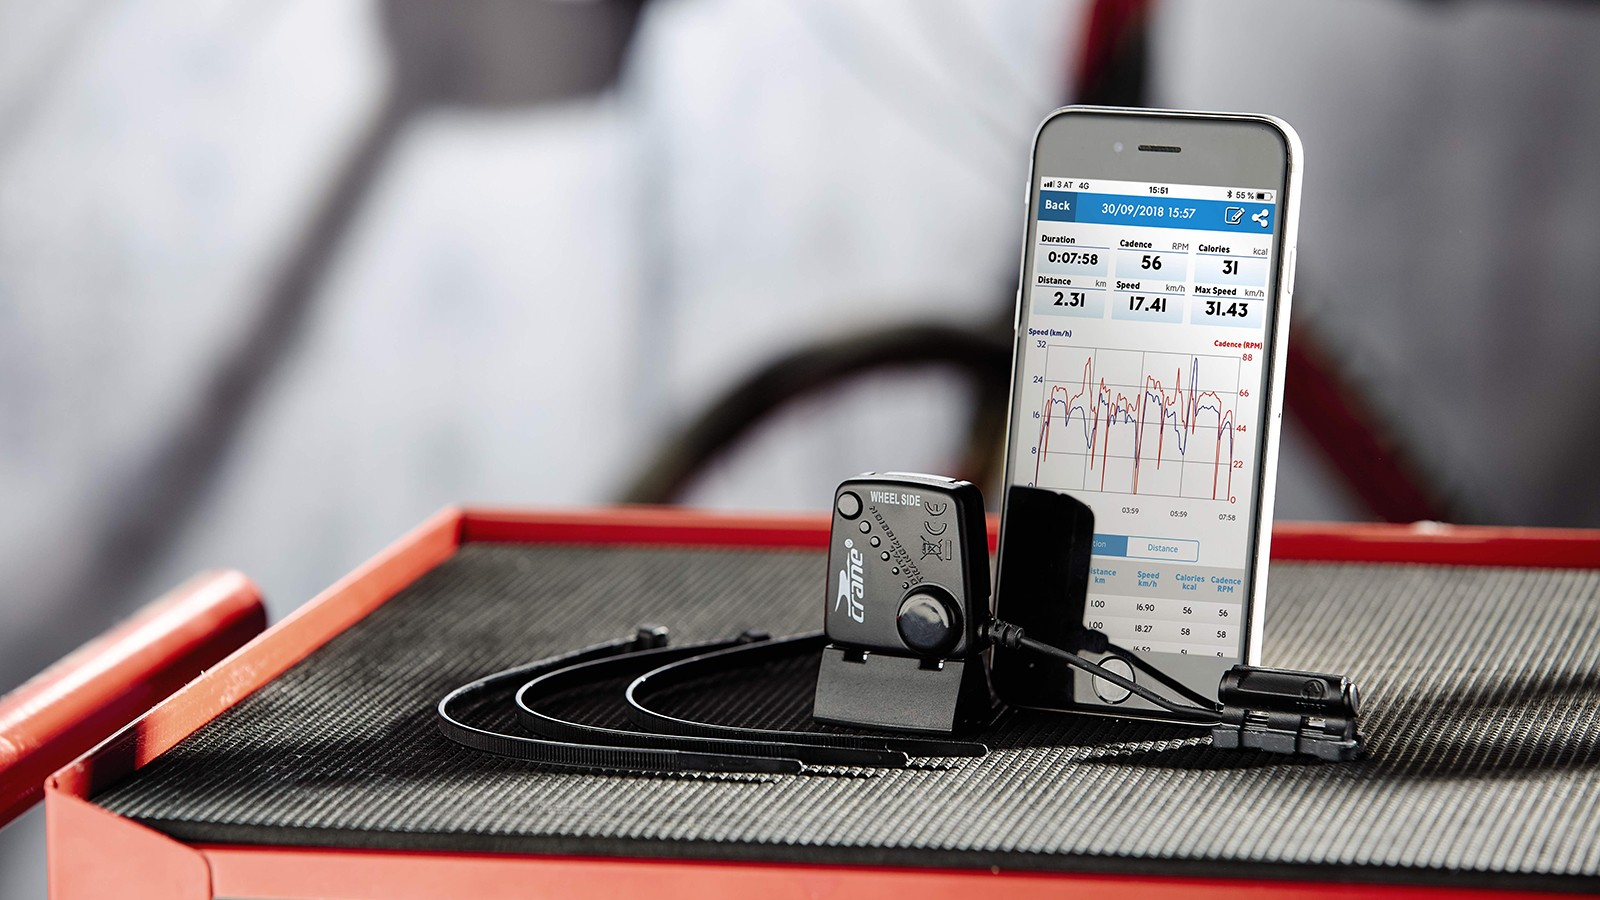 Track your training with this £19.99 Speed and Cadence sensor